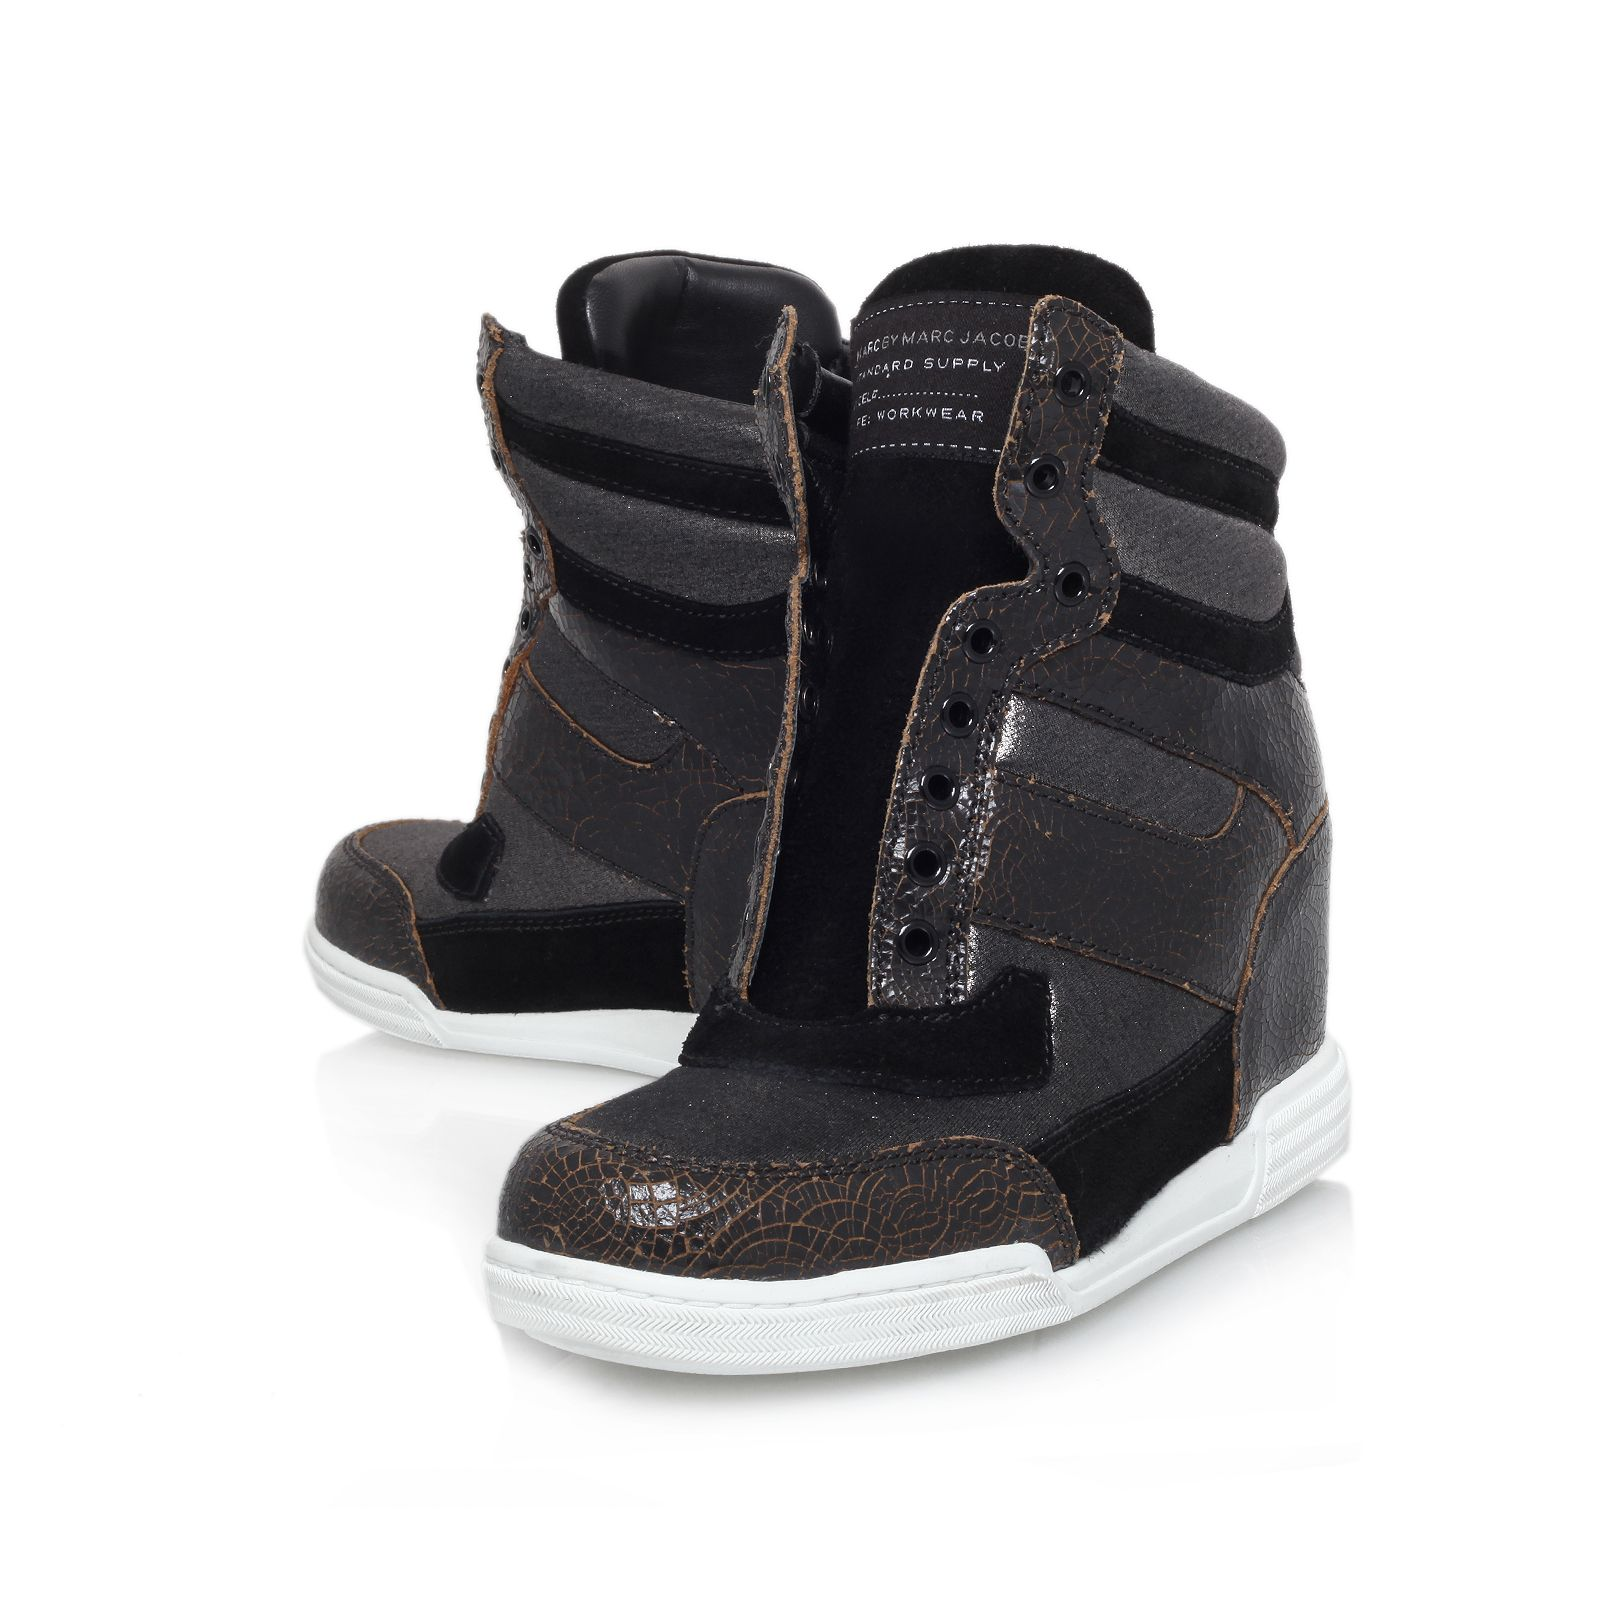 Wedge leather sneaker